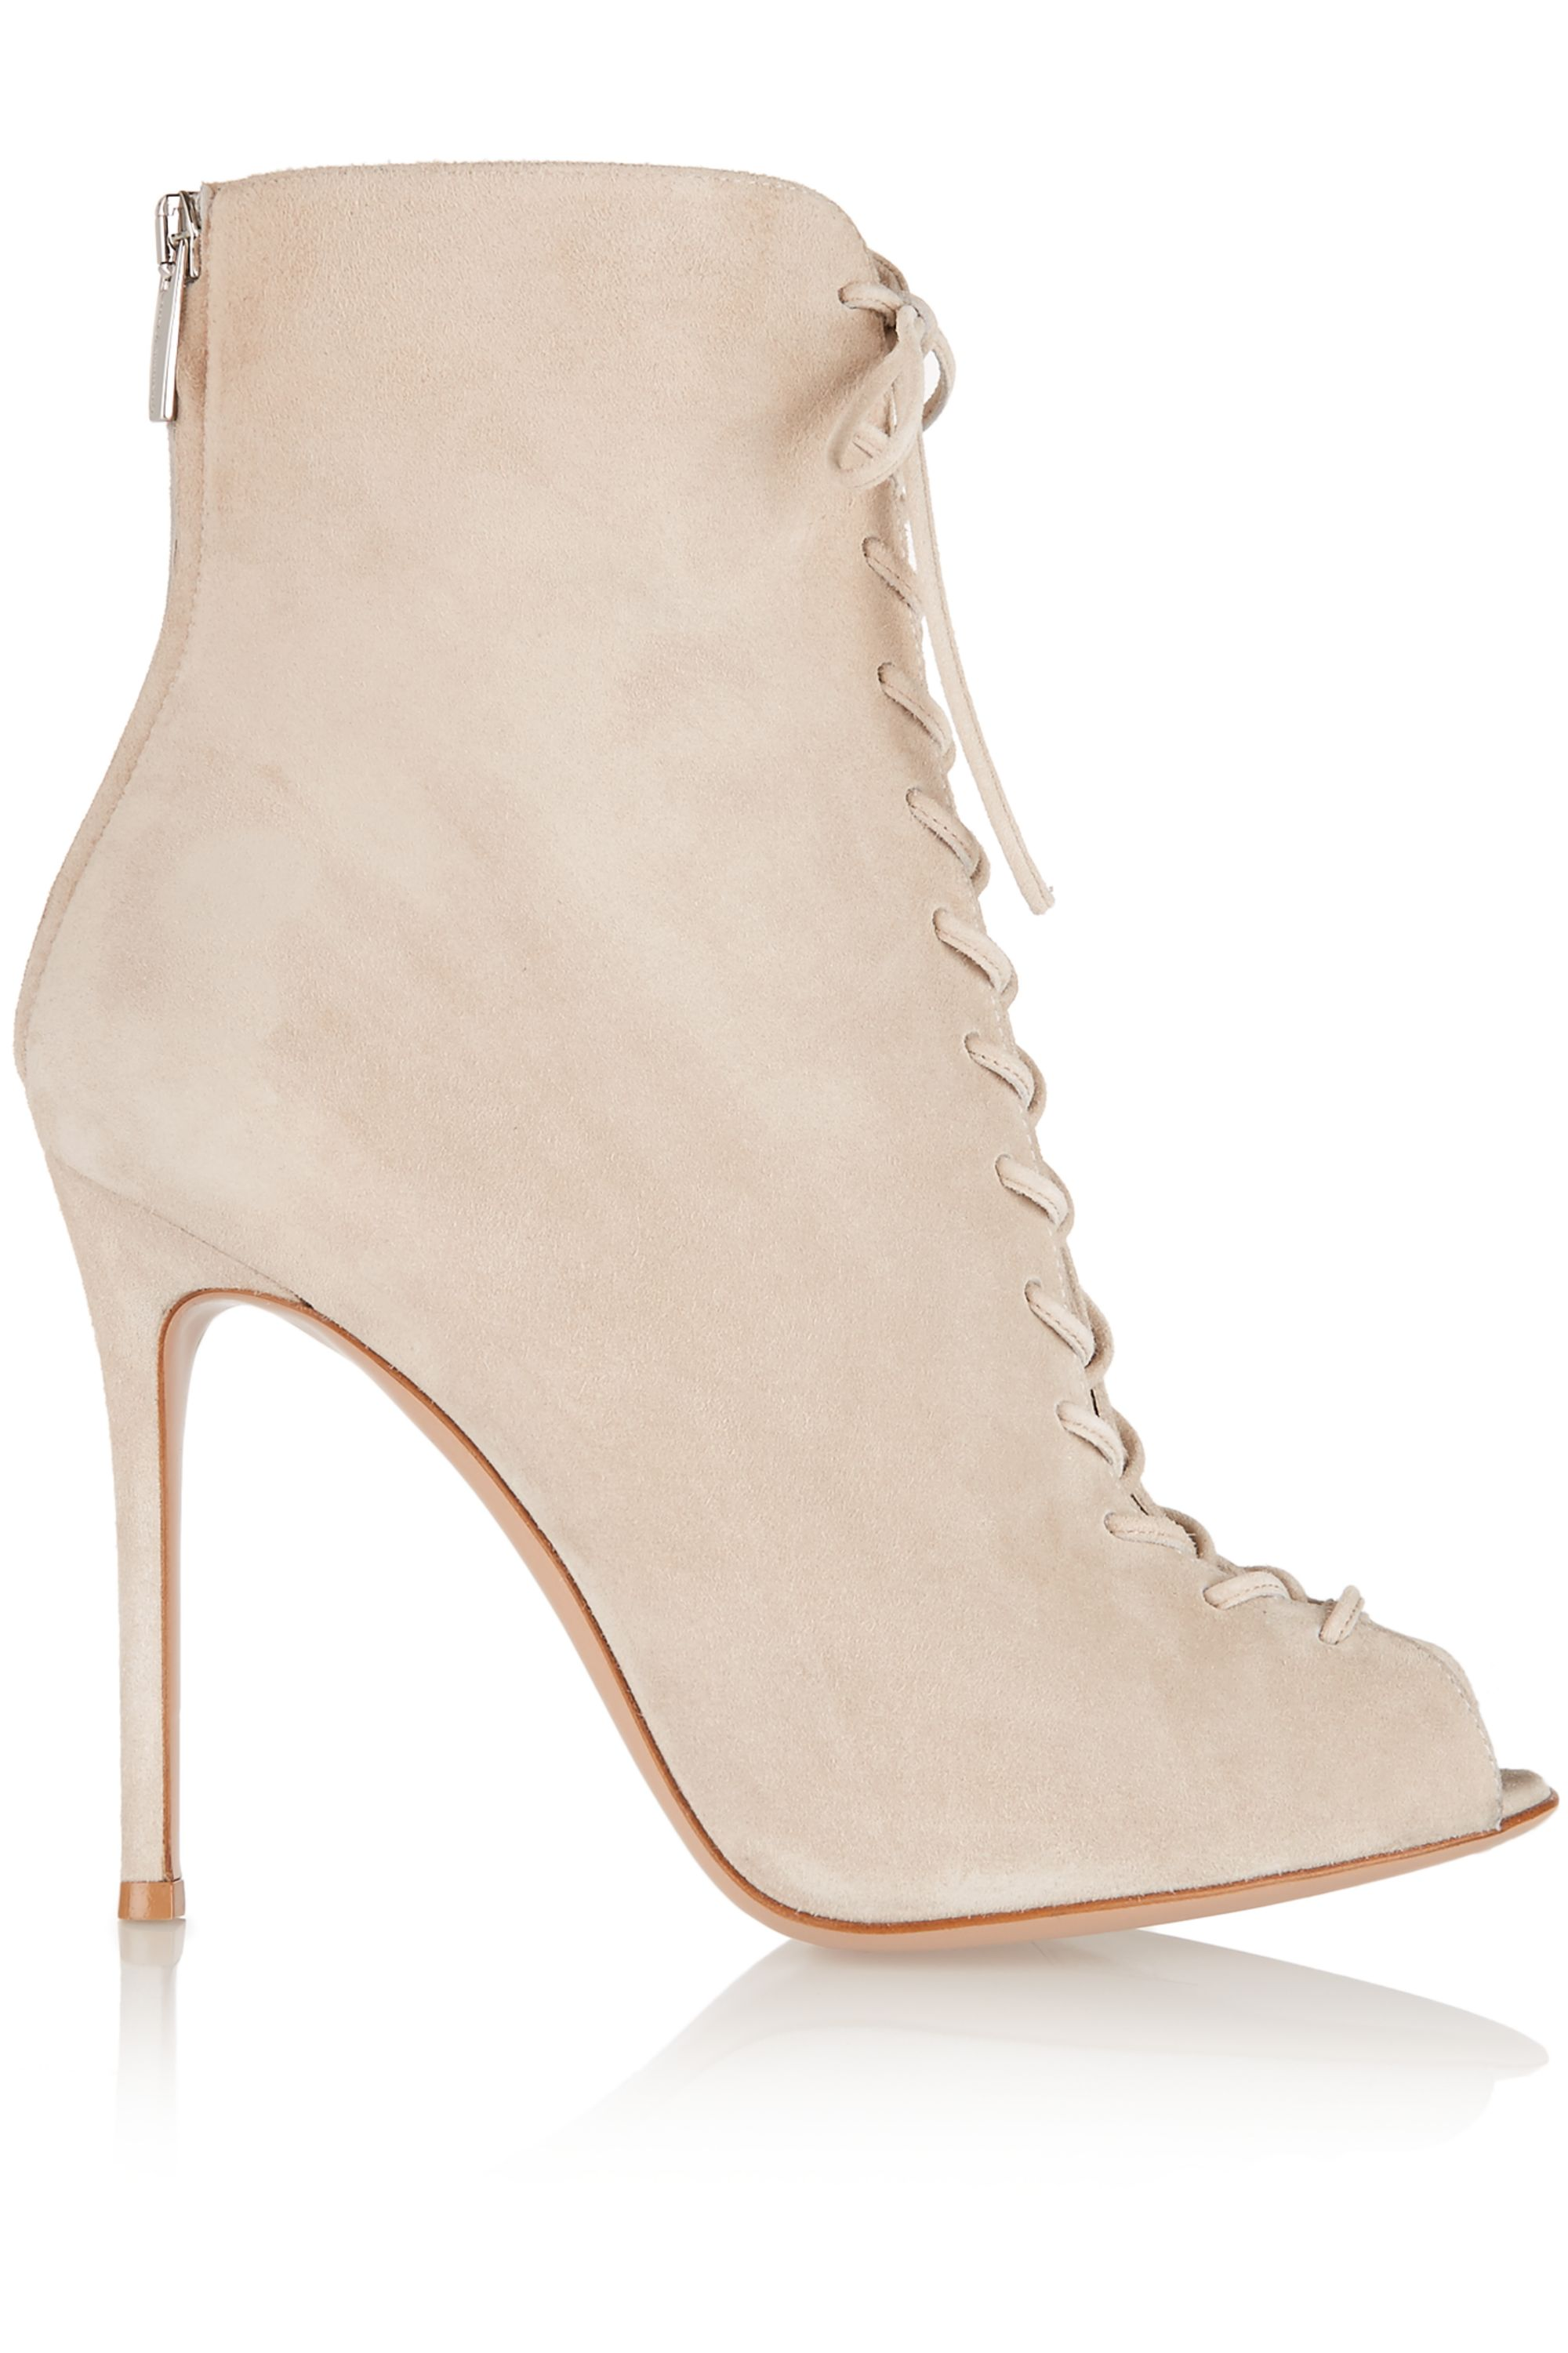 Gianvito Rossi Lace-up suede ankle boots